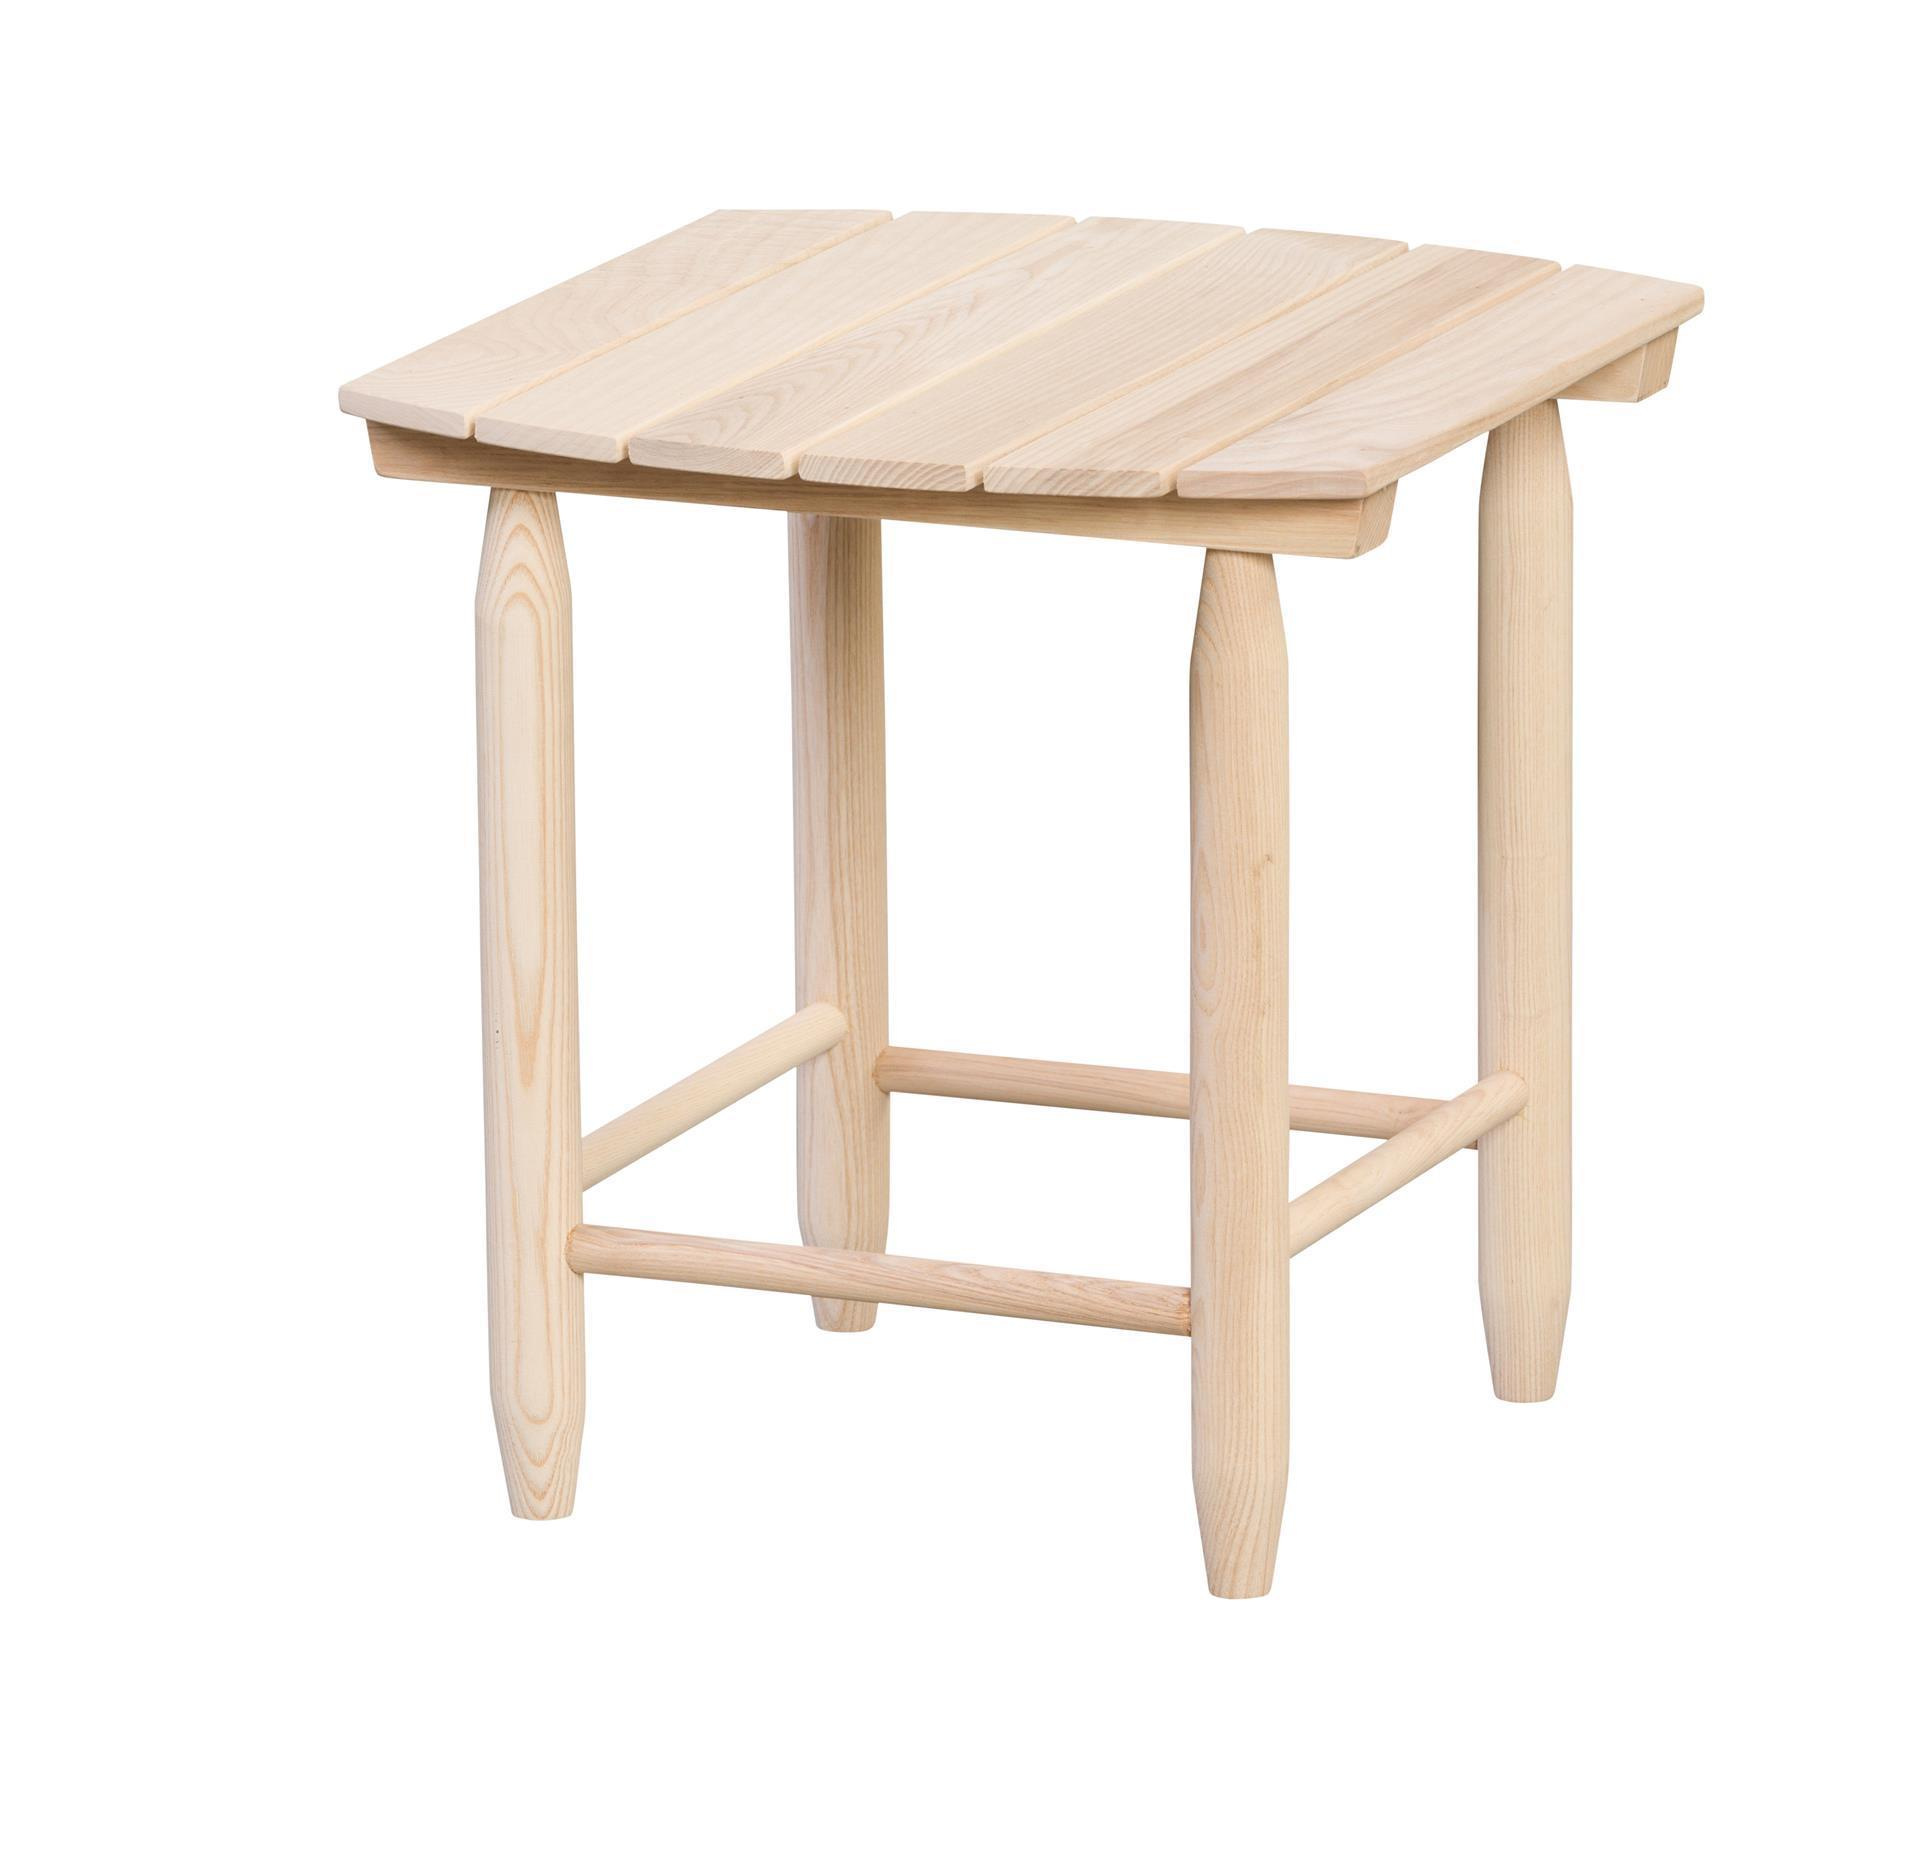 ash wood accent table from dutchcrafters amish furniture pid outdoor corner foyer bunnings catalogue mosaic garden side patio clearance room essentials tiffany style lighting